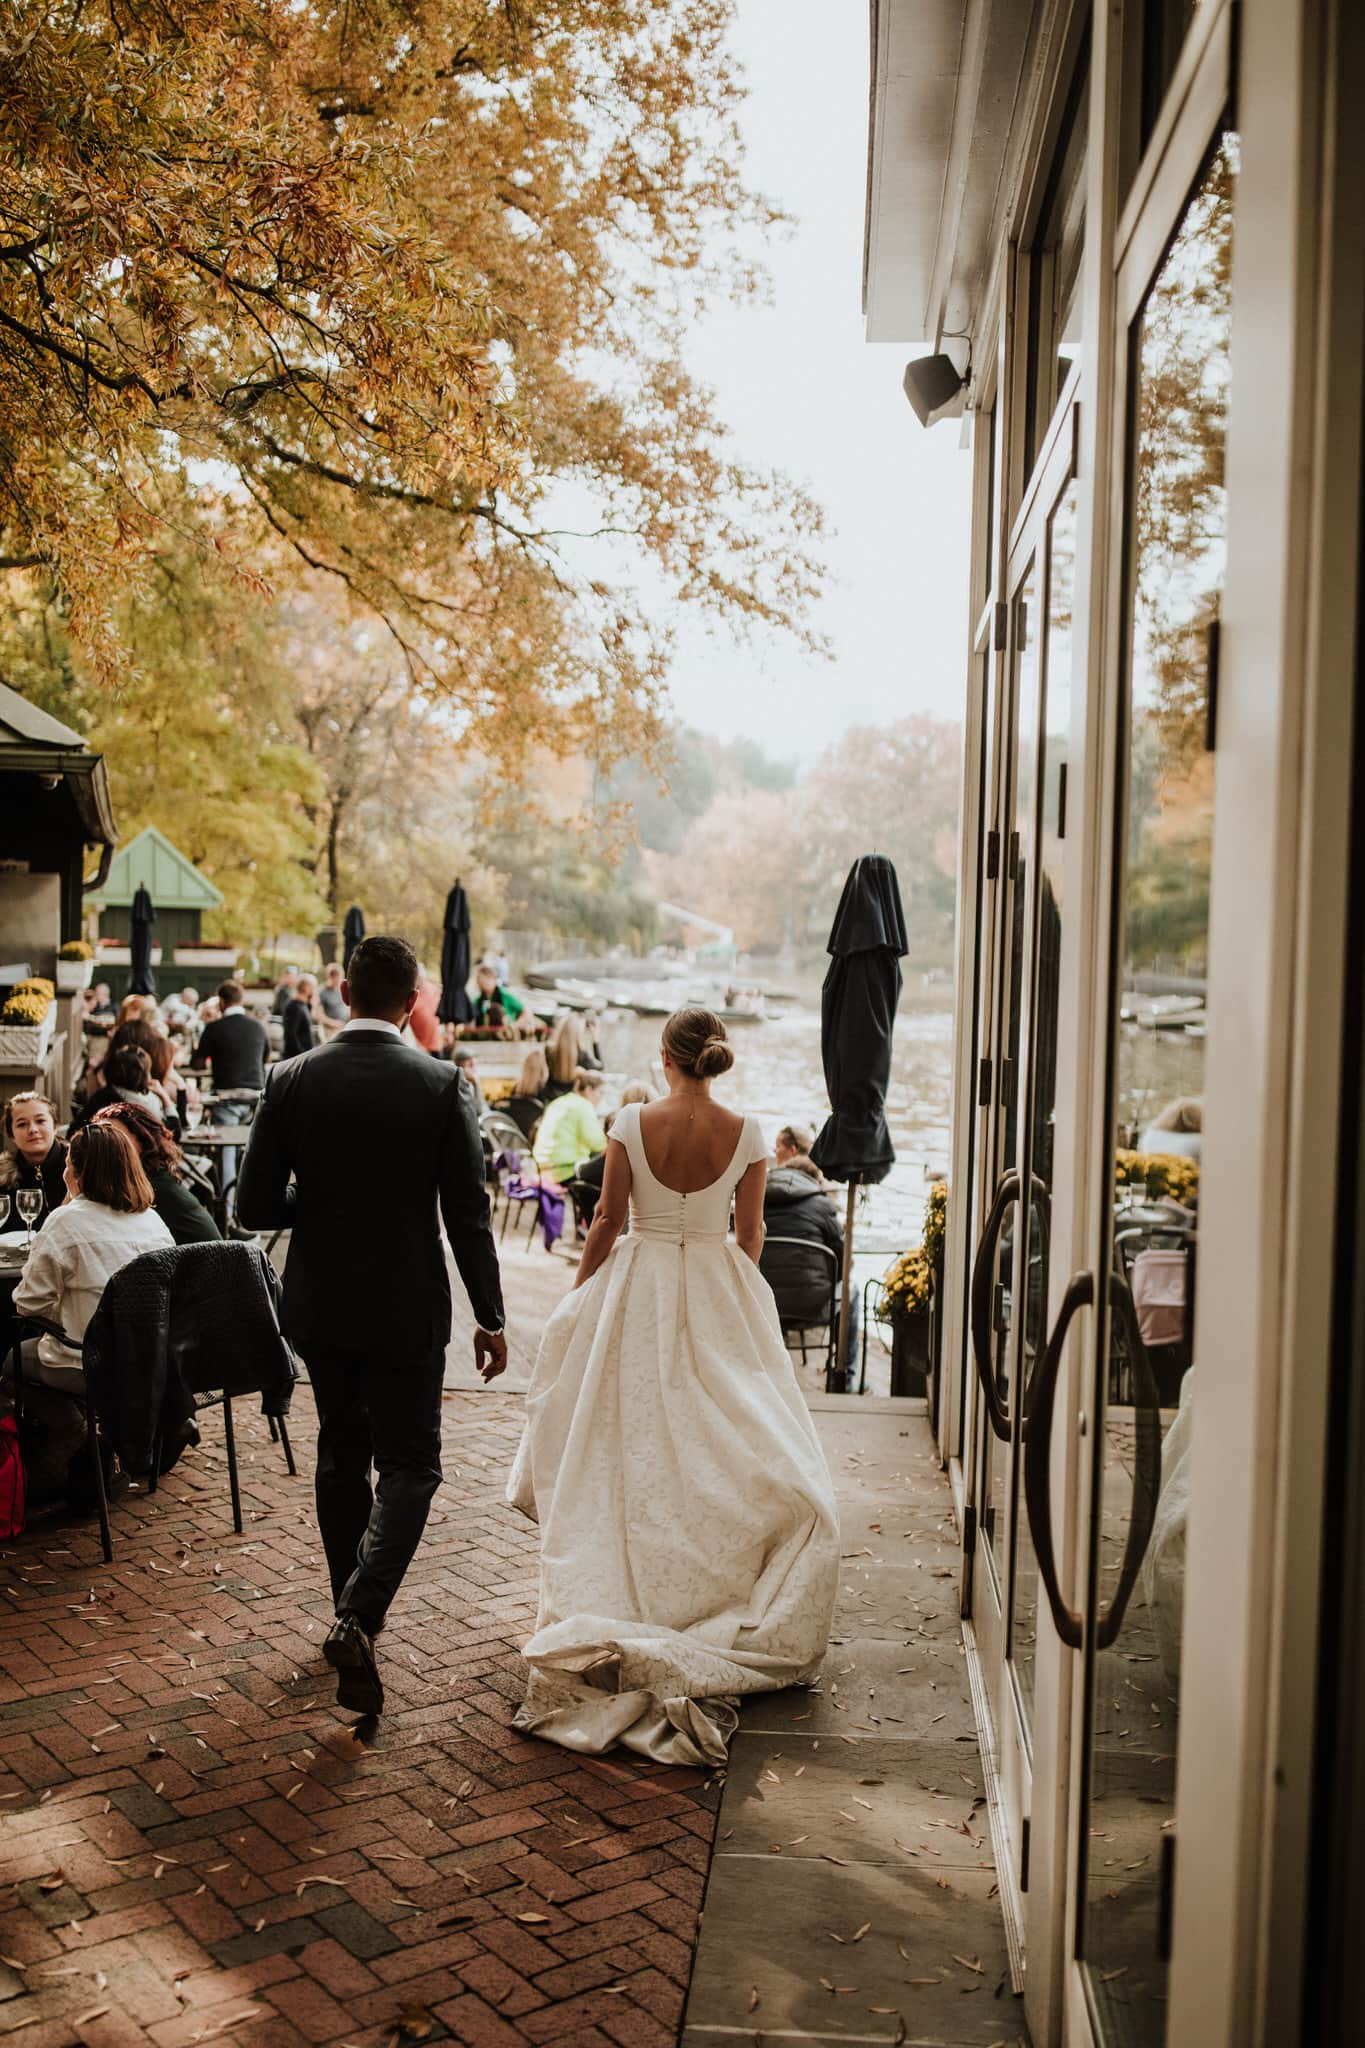 The bride and groom walk through Tavern on the Green in Central Park, New York City. Wedding Photographer Brent Calis.